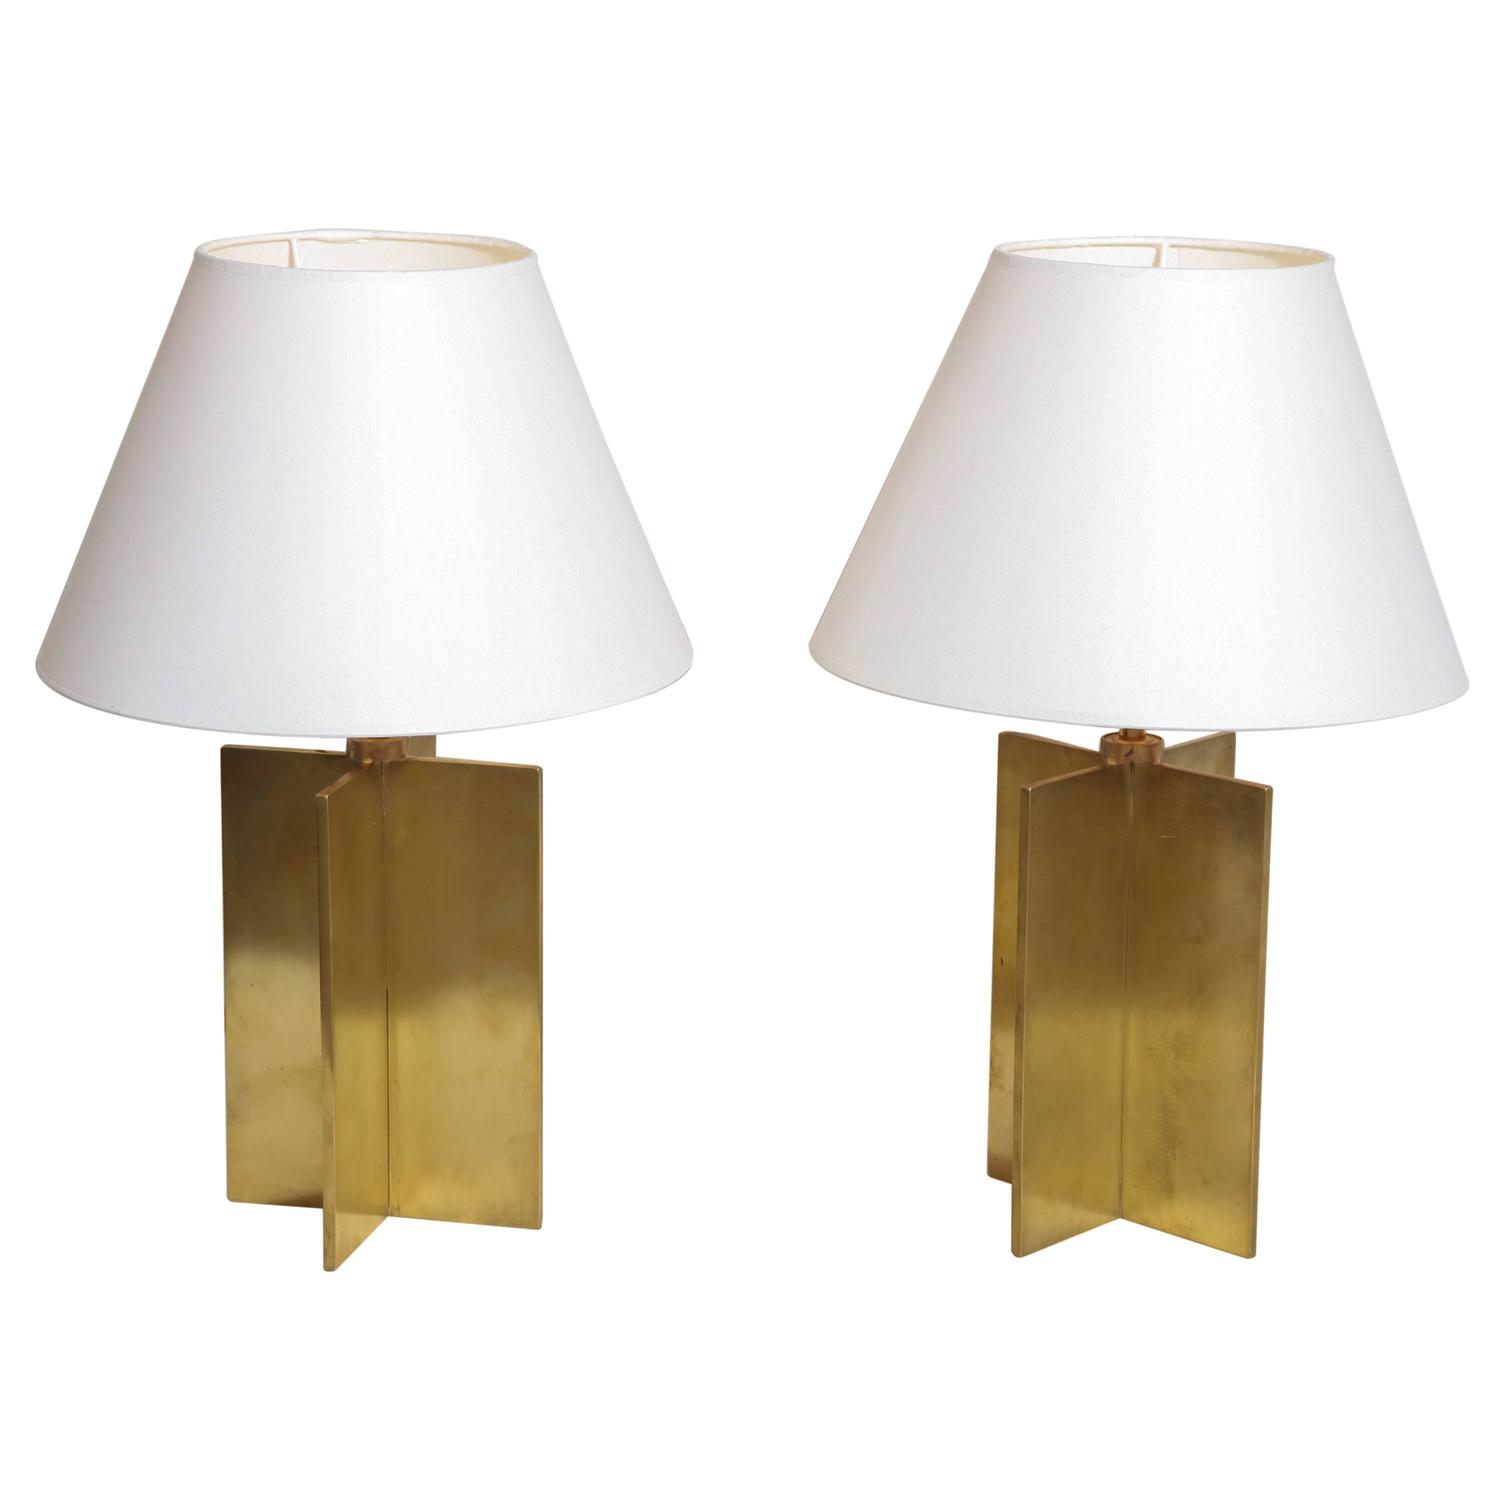 jean michel frank french art deco pair of croisillon table lamps